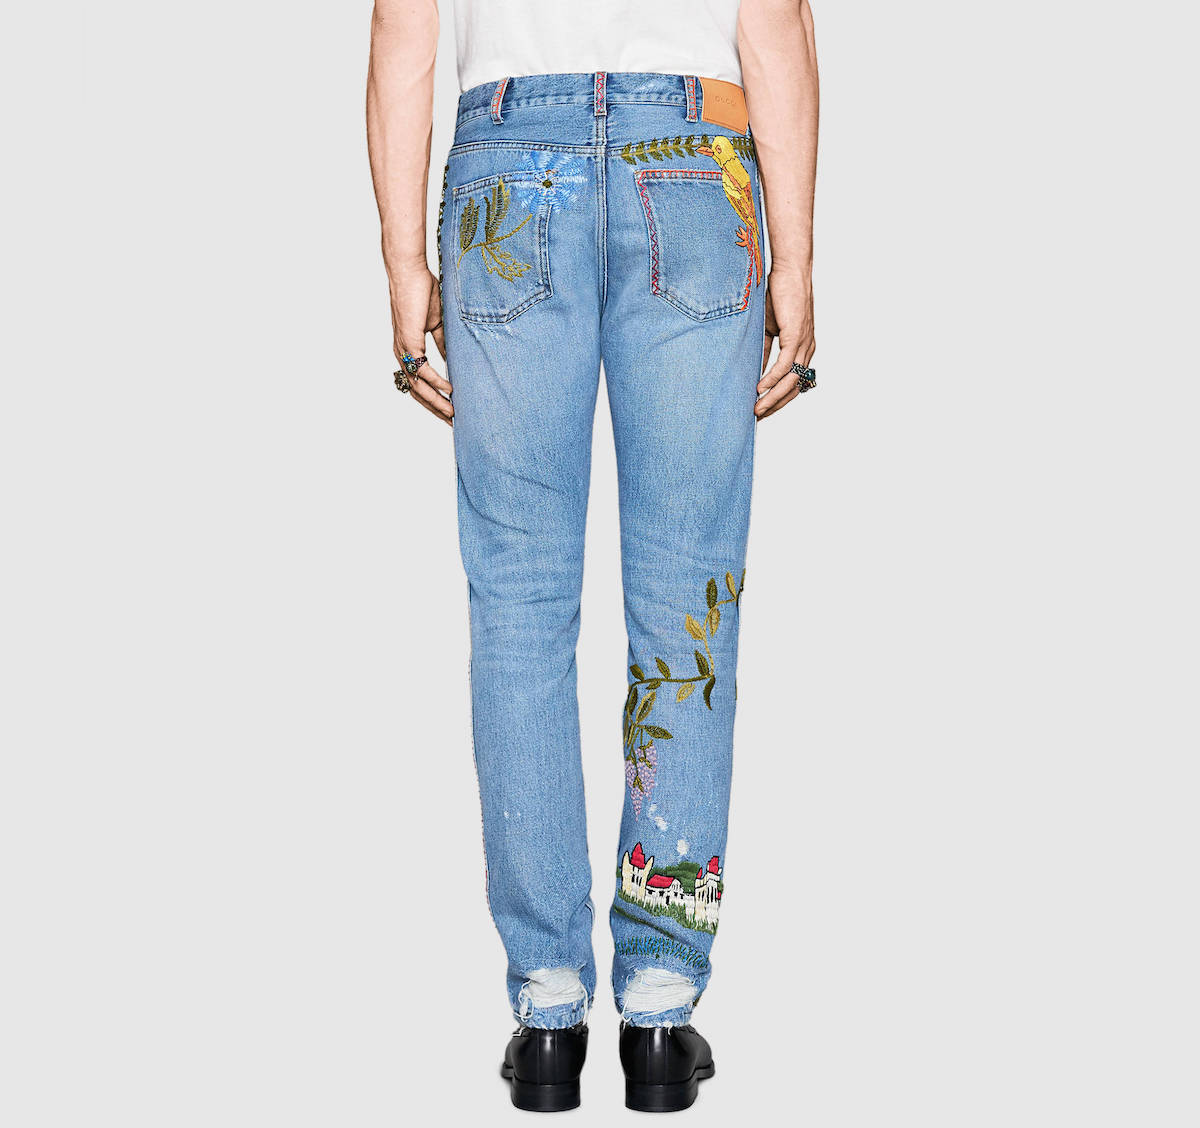 gucci-light-embroidered-denim-jeans-3